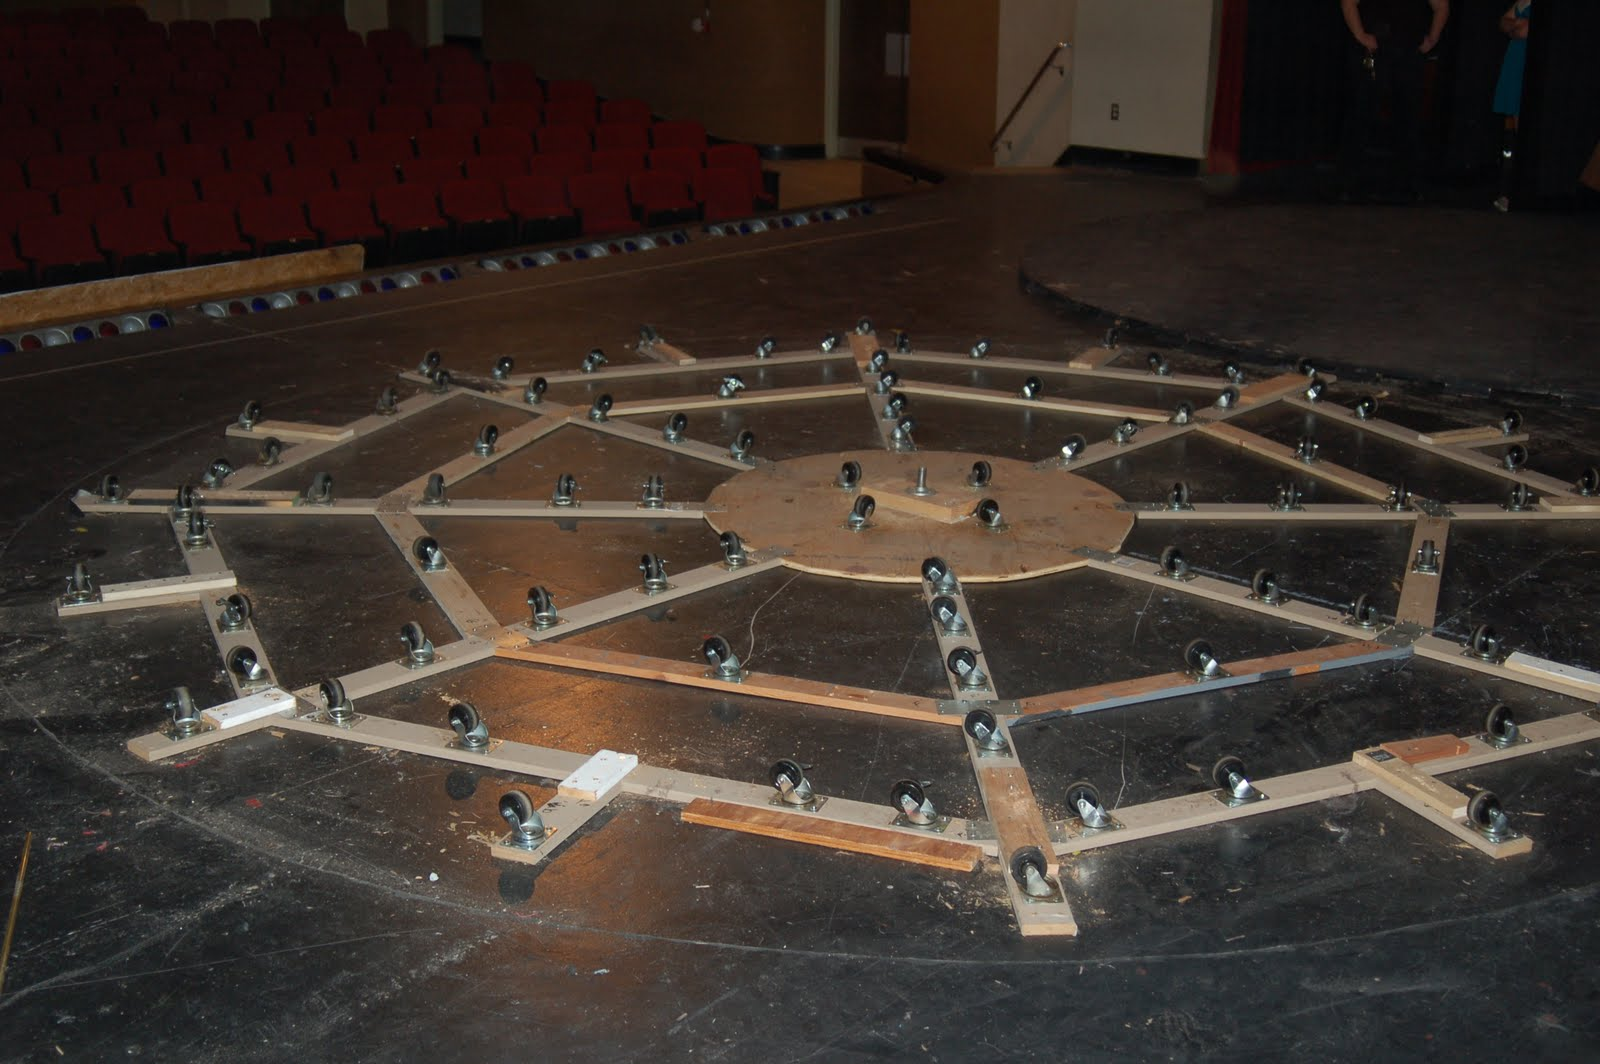 Make A Revolving Stage How To Make A Revolving Stage